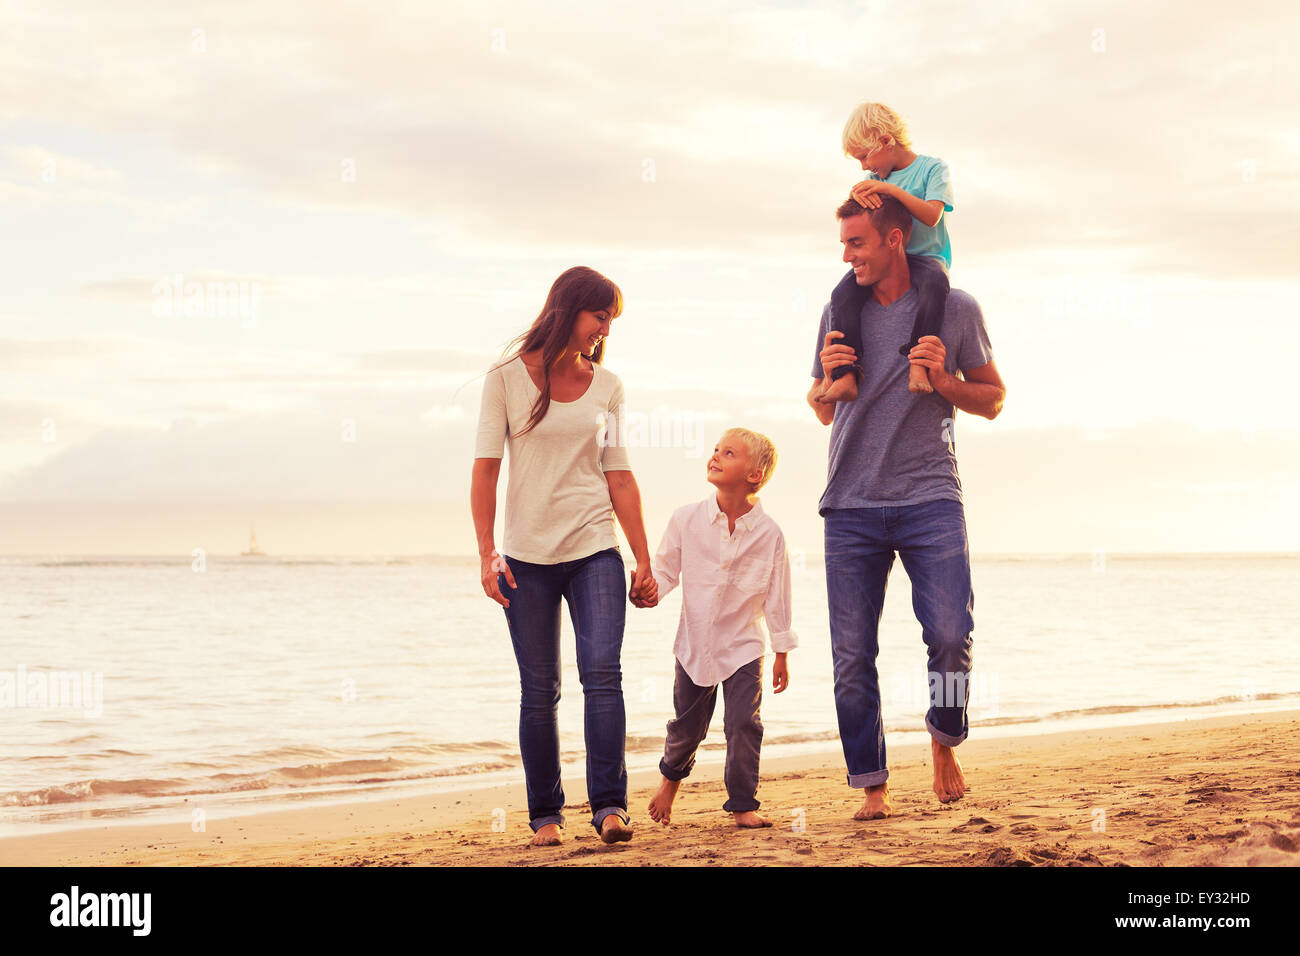 Happy young family having fun walking on the beach at sunset - Stock Image